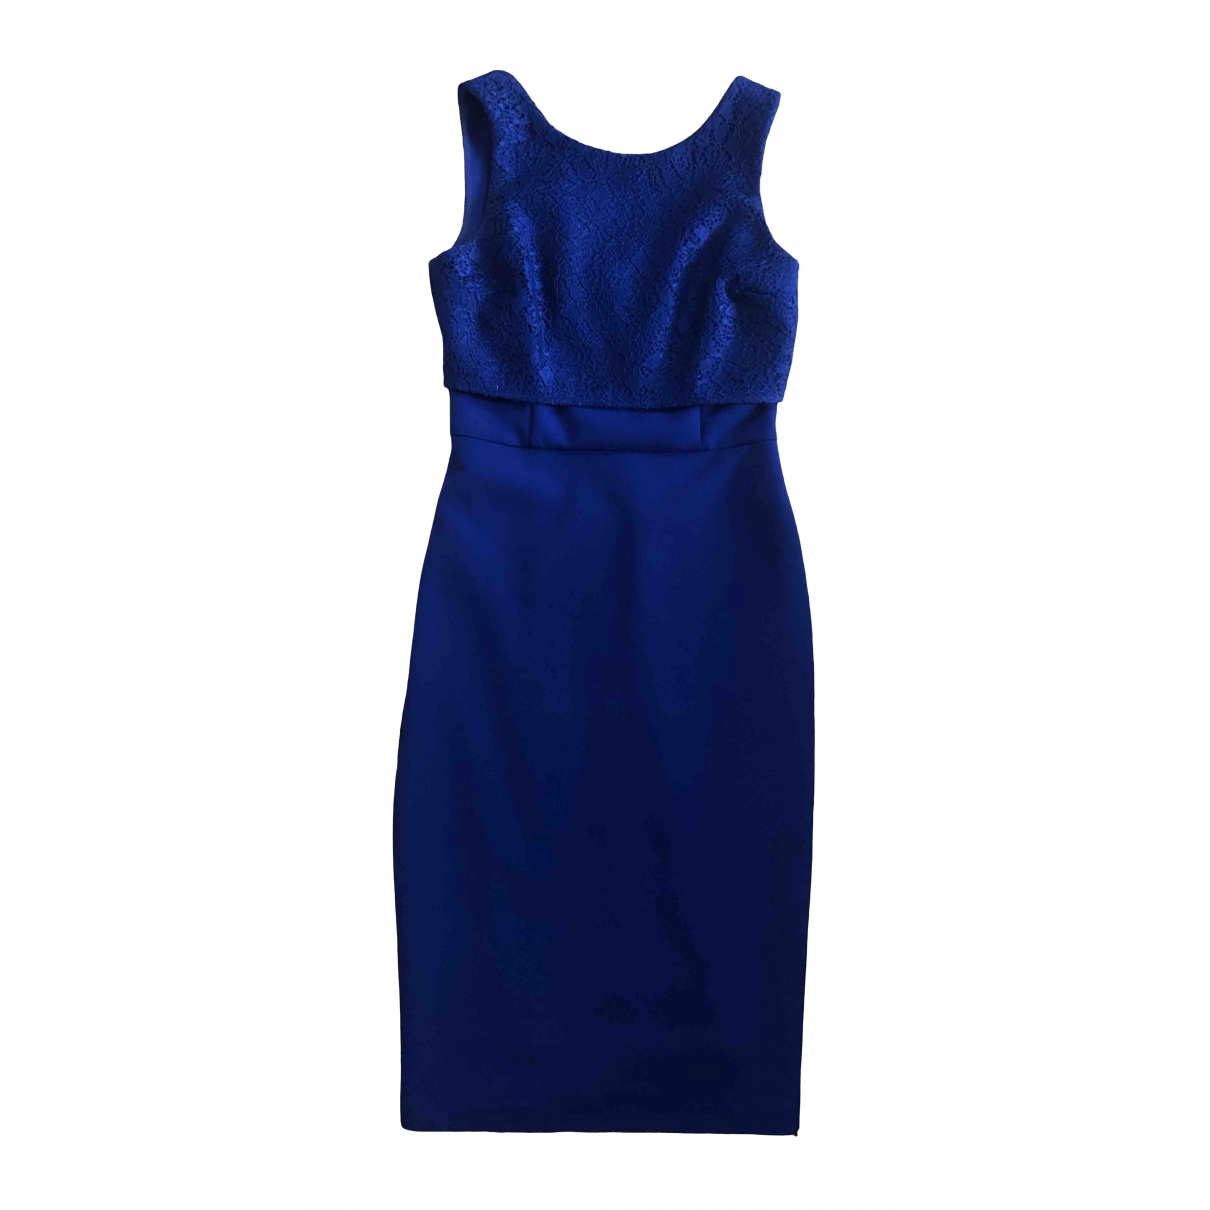 Coast \N Blue Cotton - elasthane dress for Women 36 FR